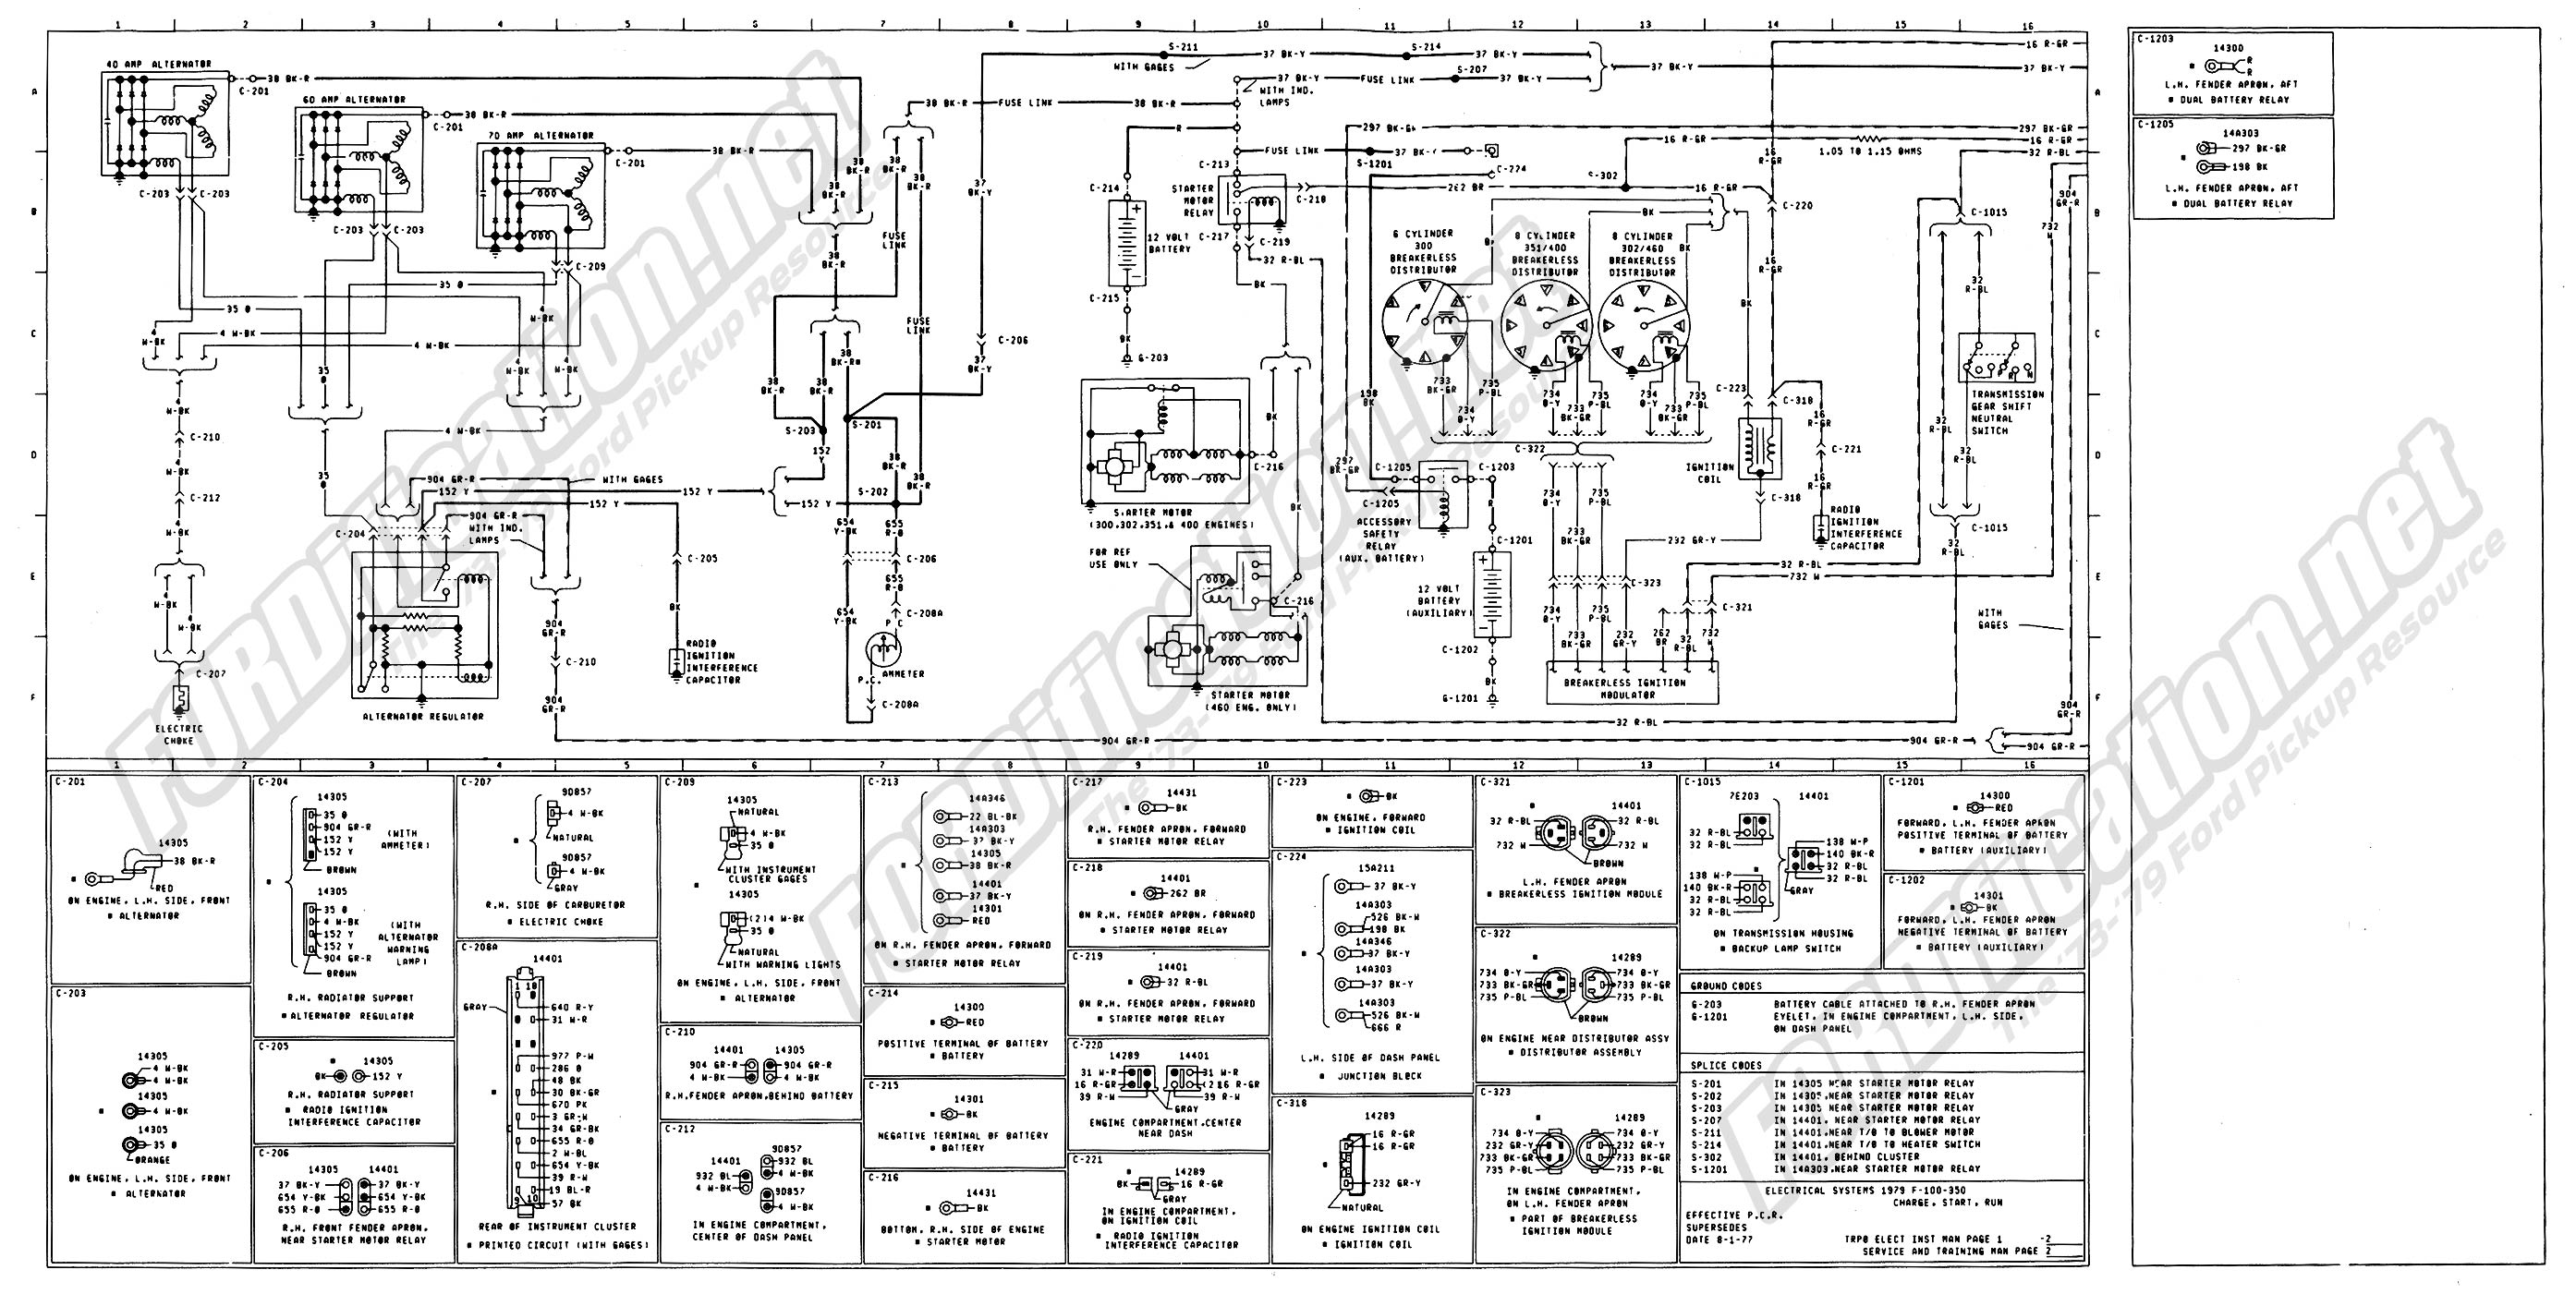 2006 Ford Fusion Radio Wiring Diagram from fordnews.org